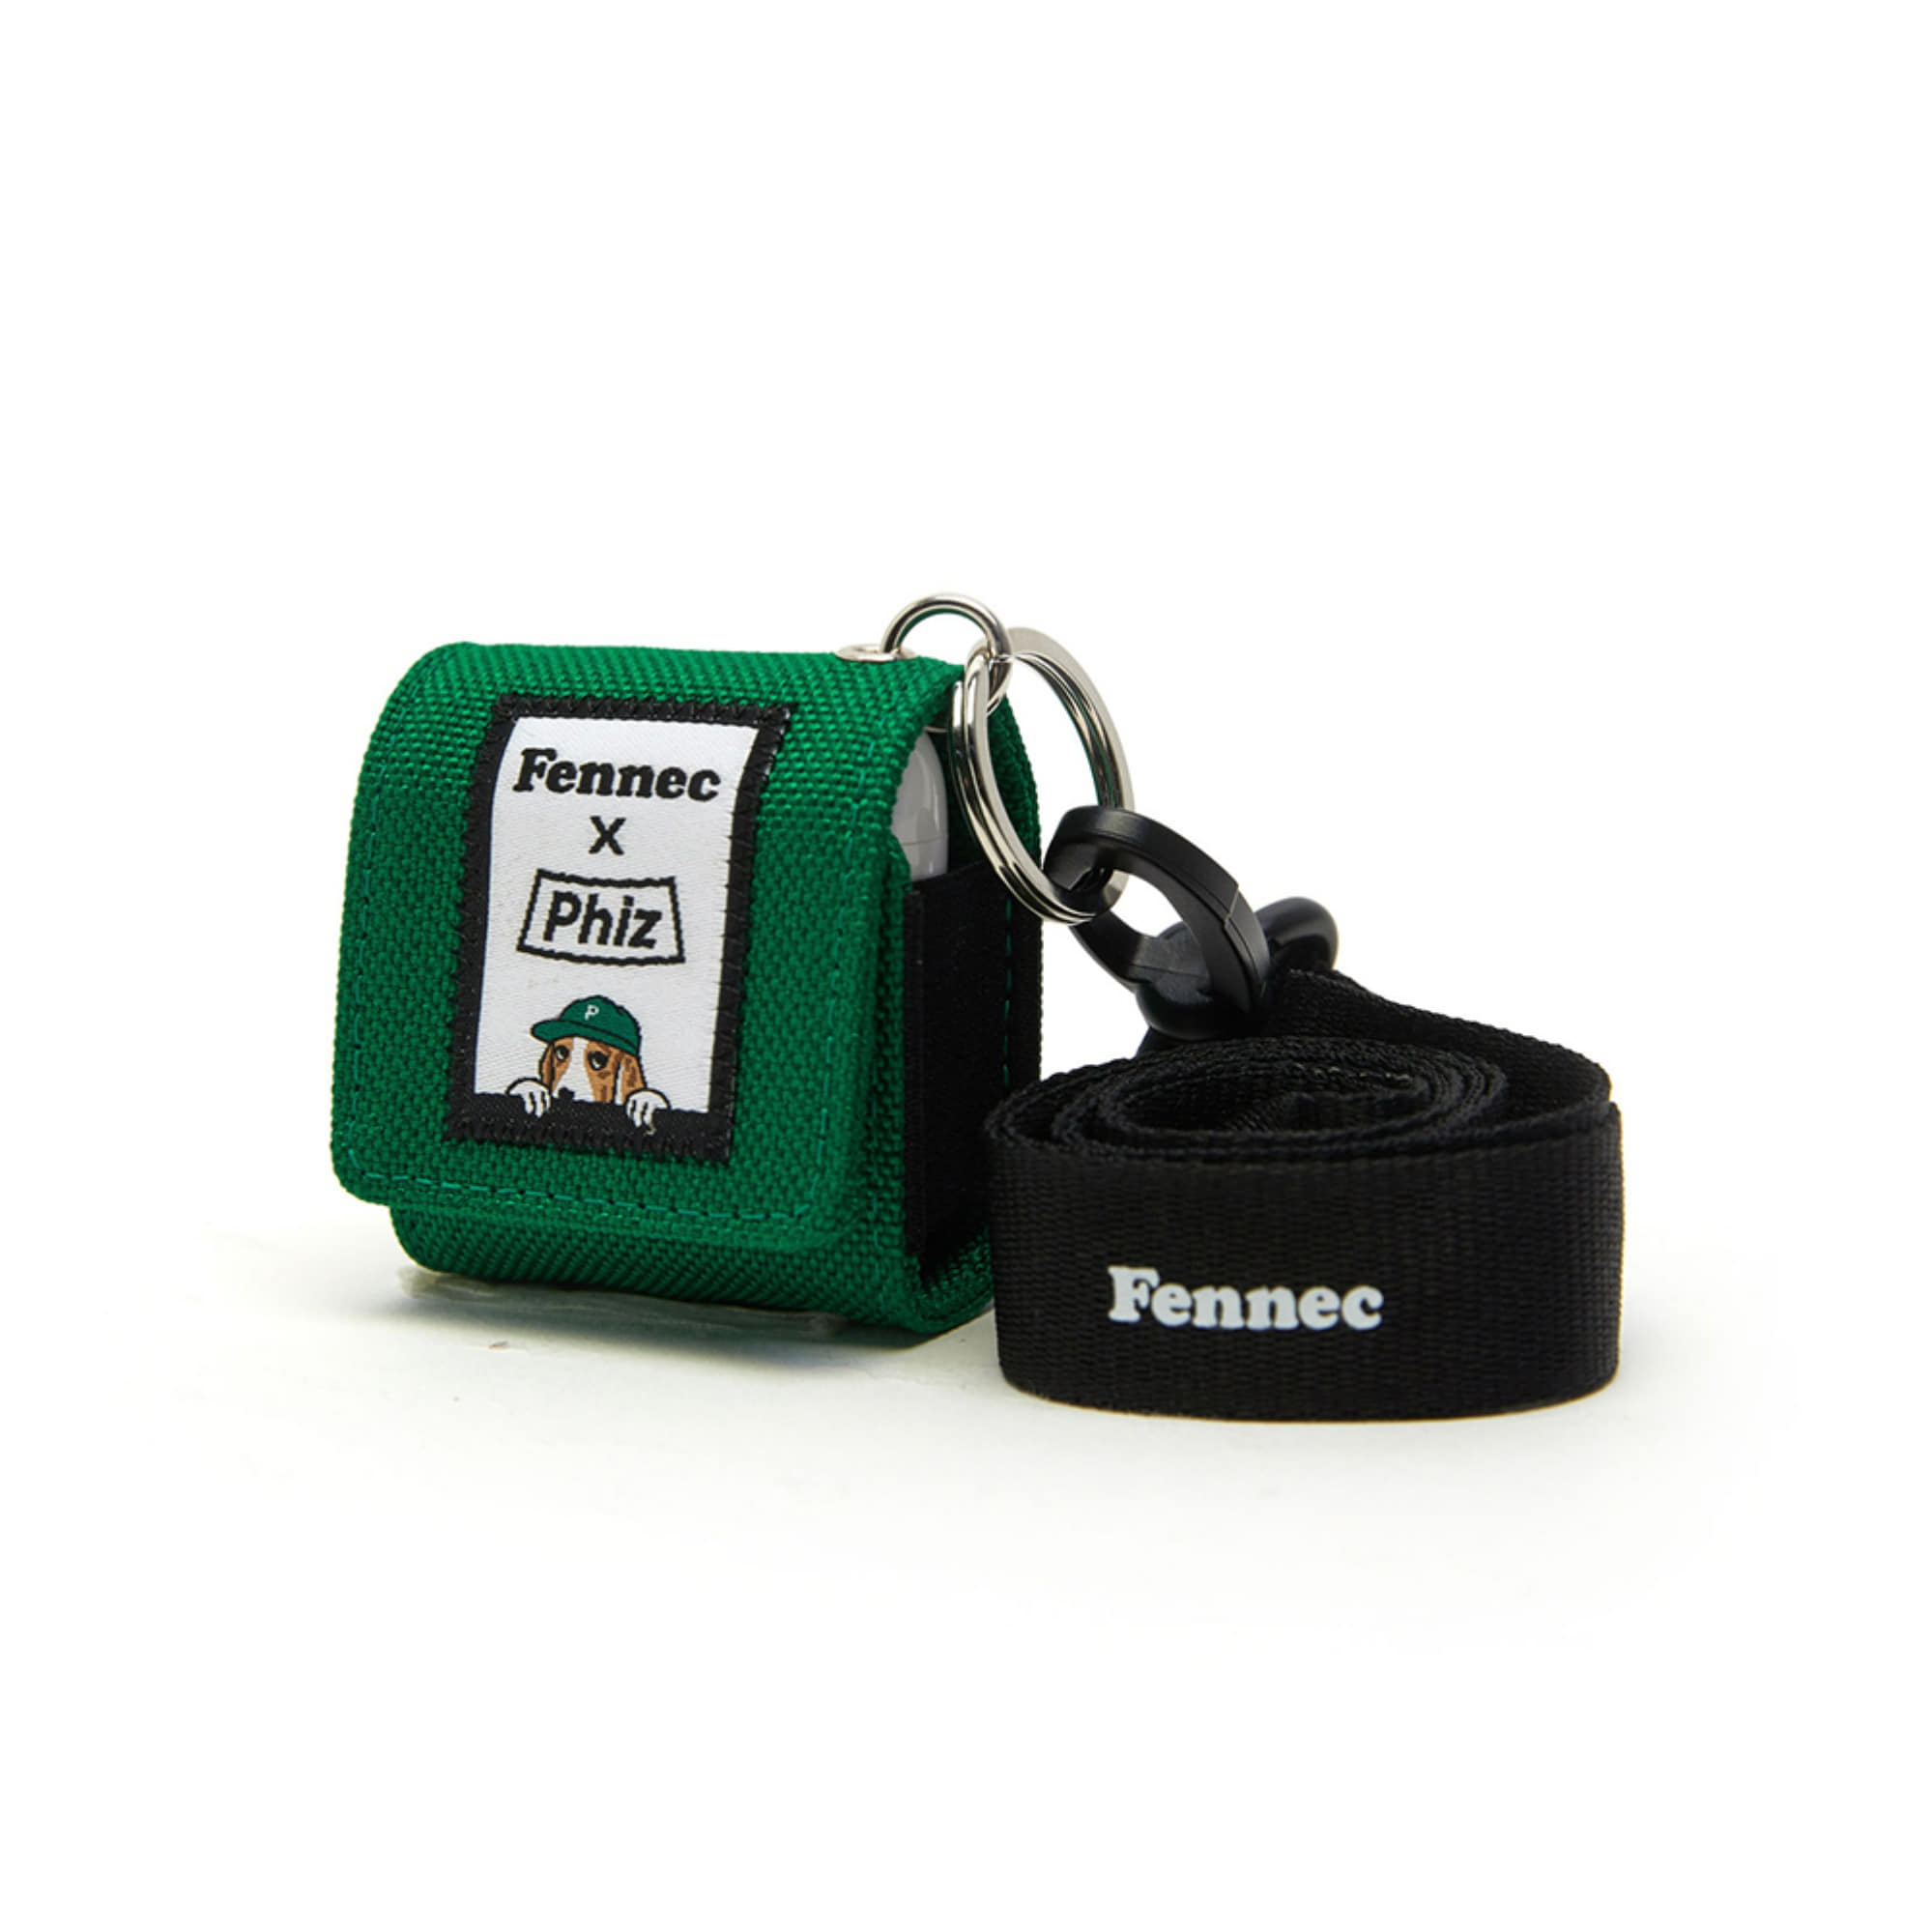 FENNEC X PHIZ C&S AIRPODS CASE - GREEN